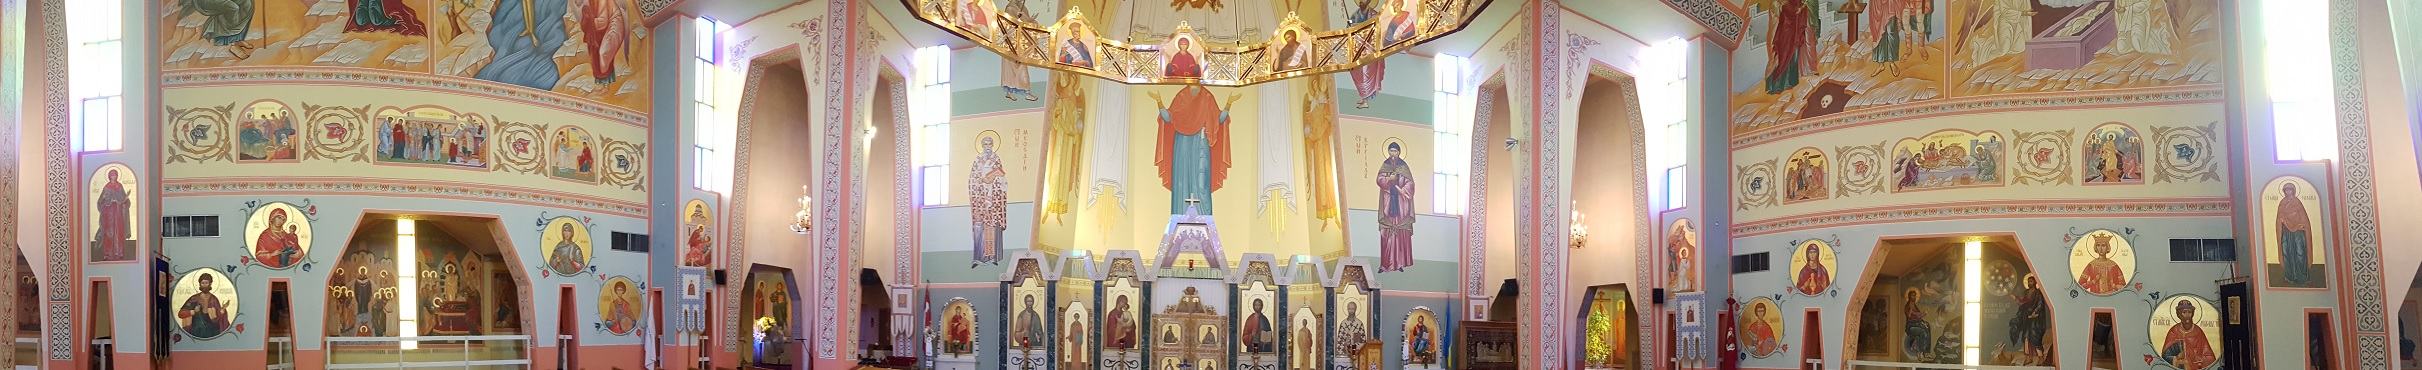 DORMITION OF THE MOTHER OF GOD UKRAINIAN CATHOLIC CHURCH